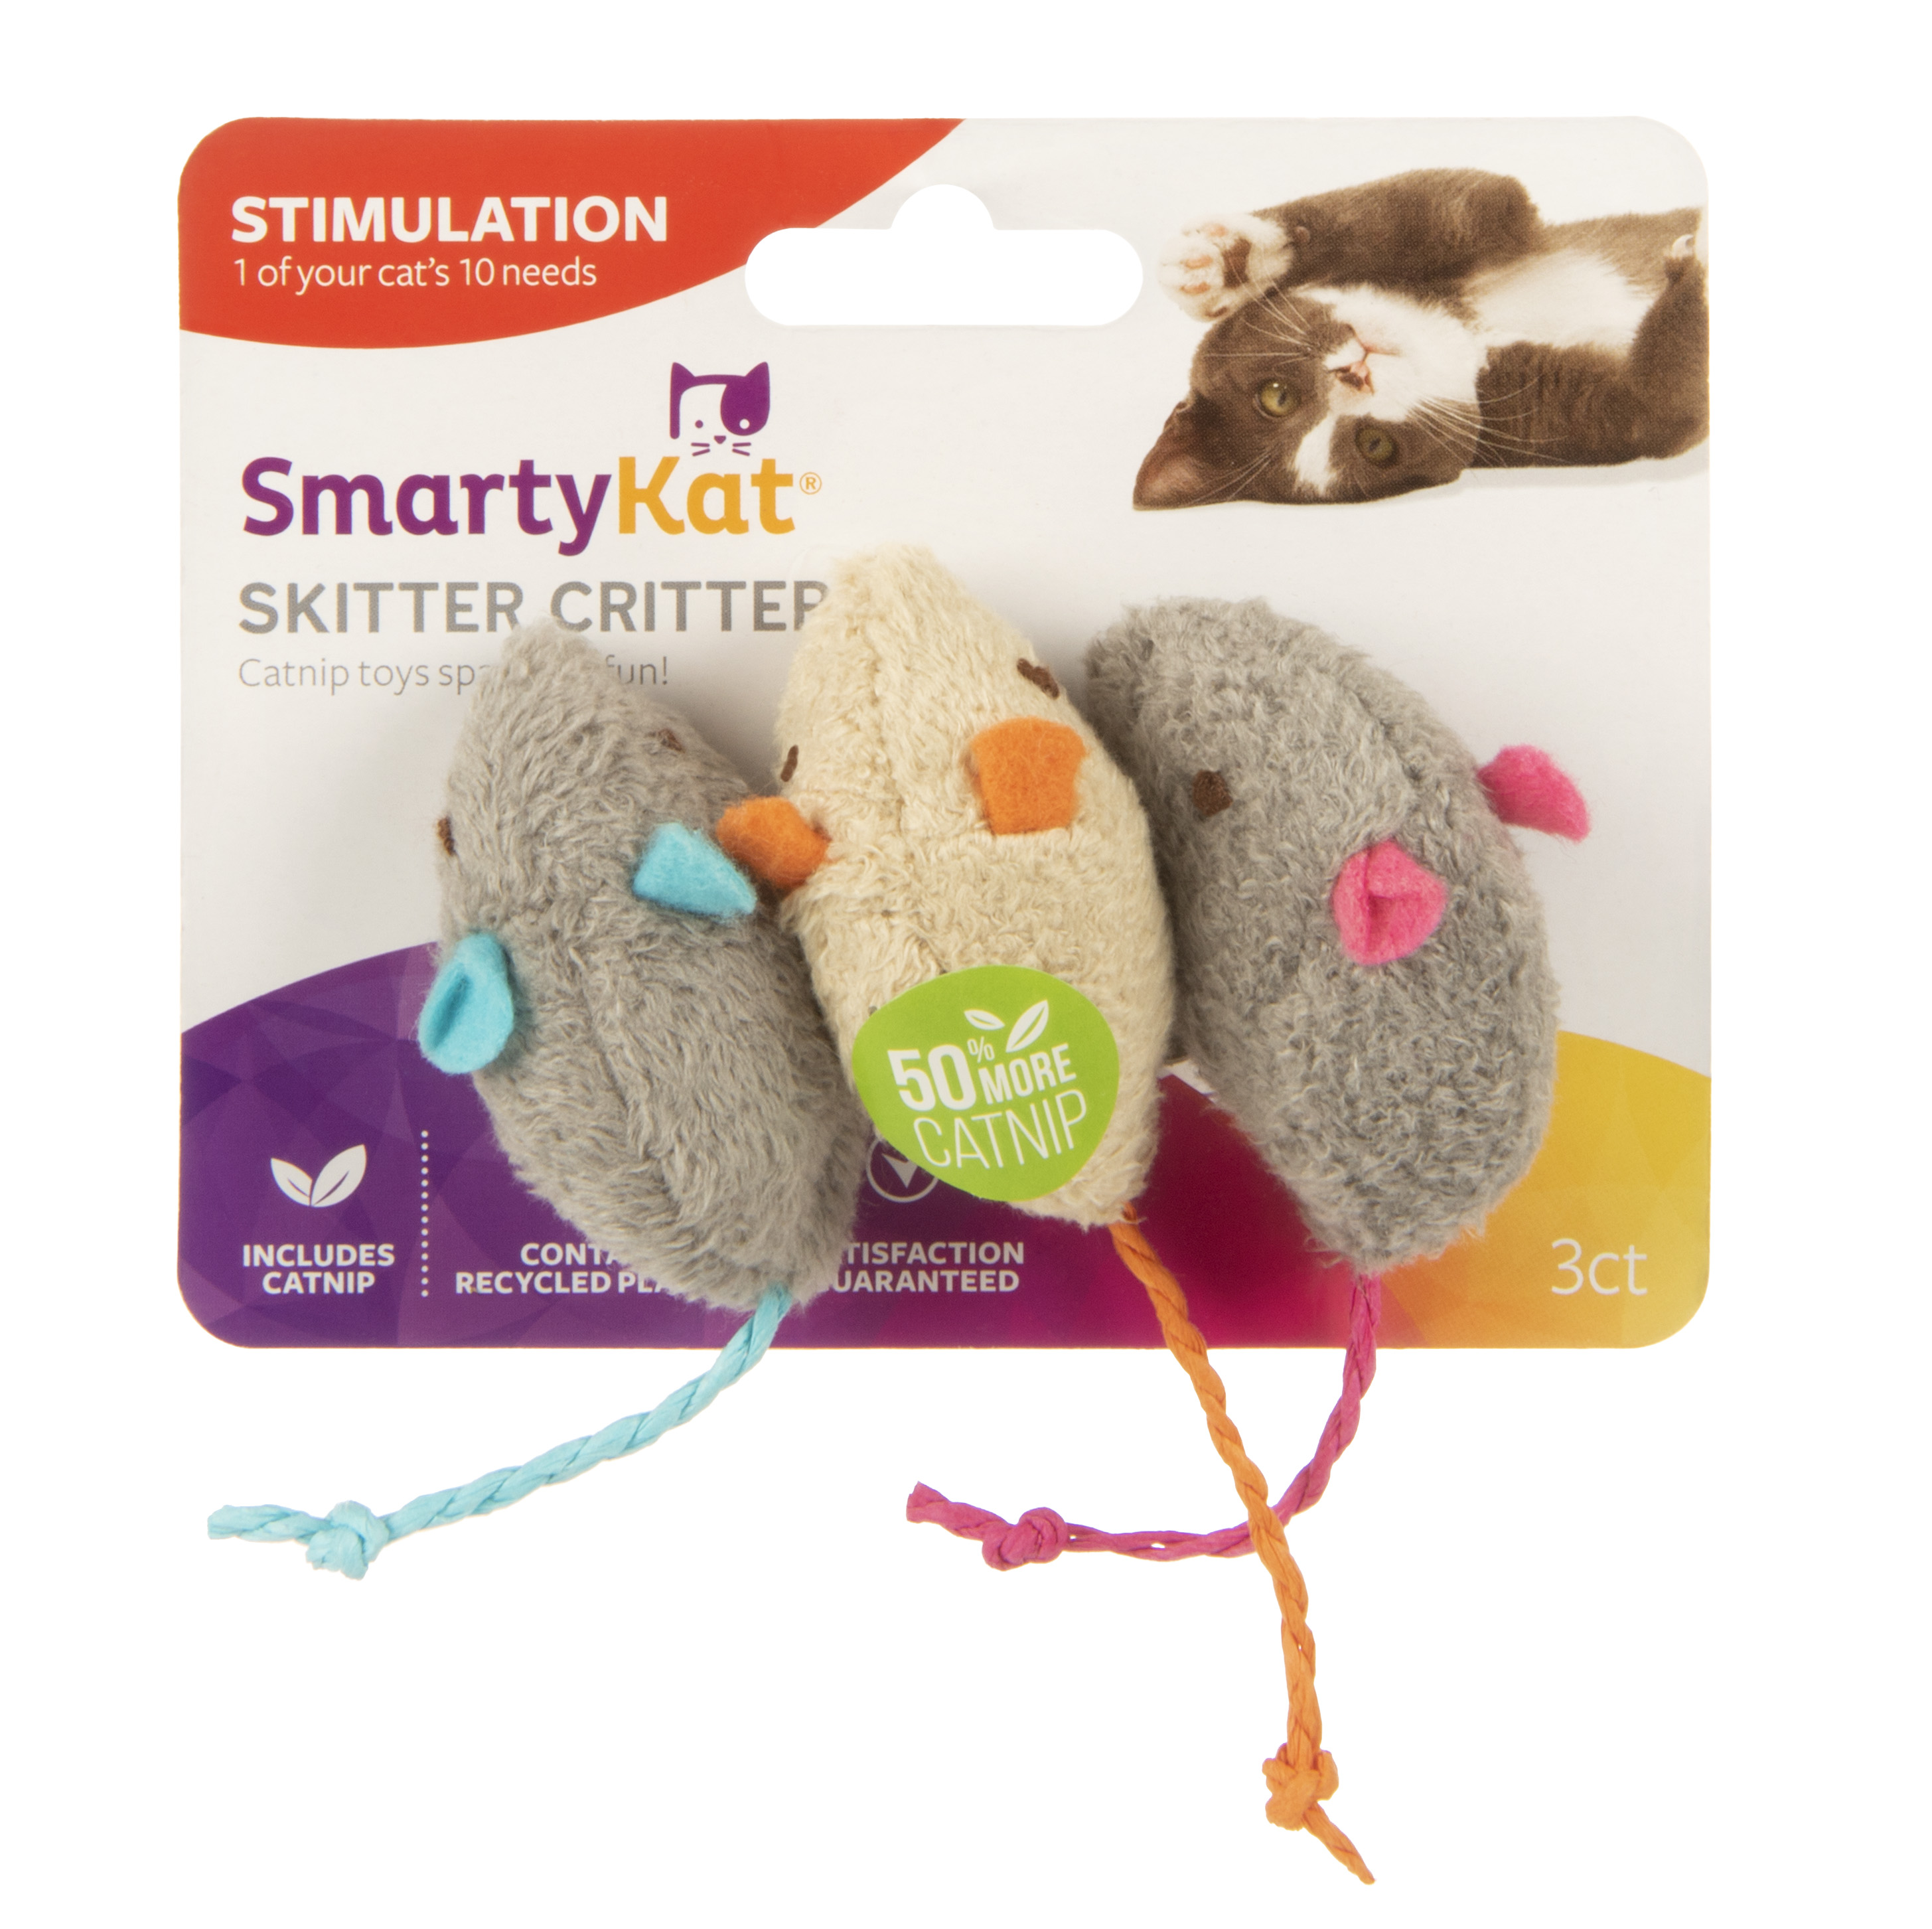 SmartyKat Skitter Critters Mice Catnip Cat Toys, 3 Count